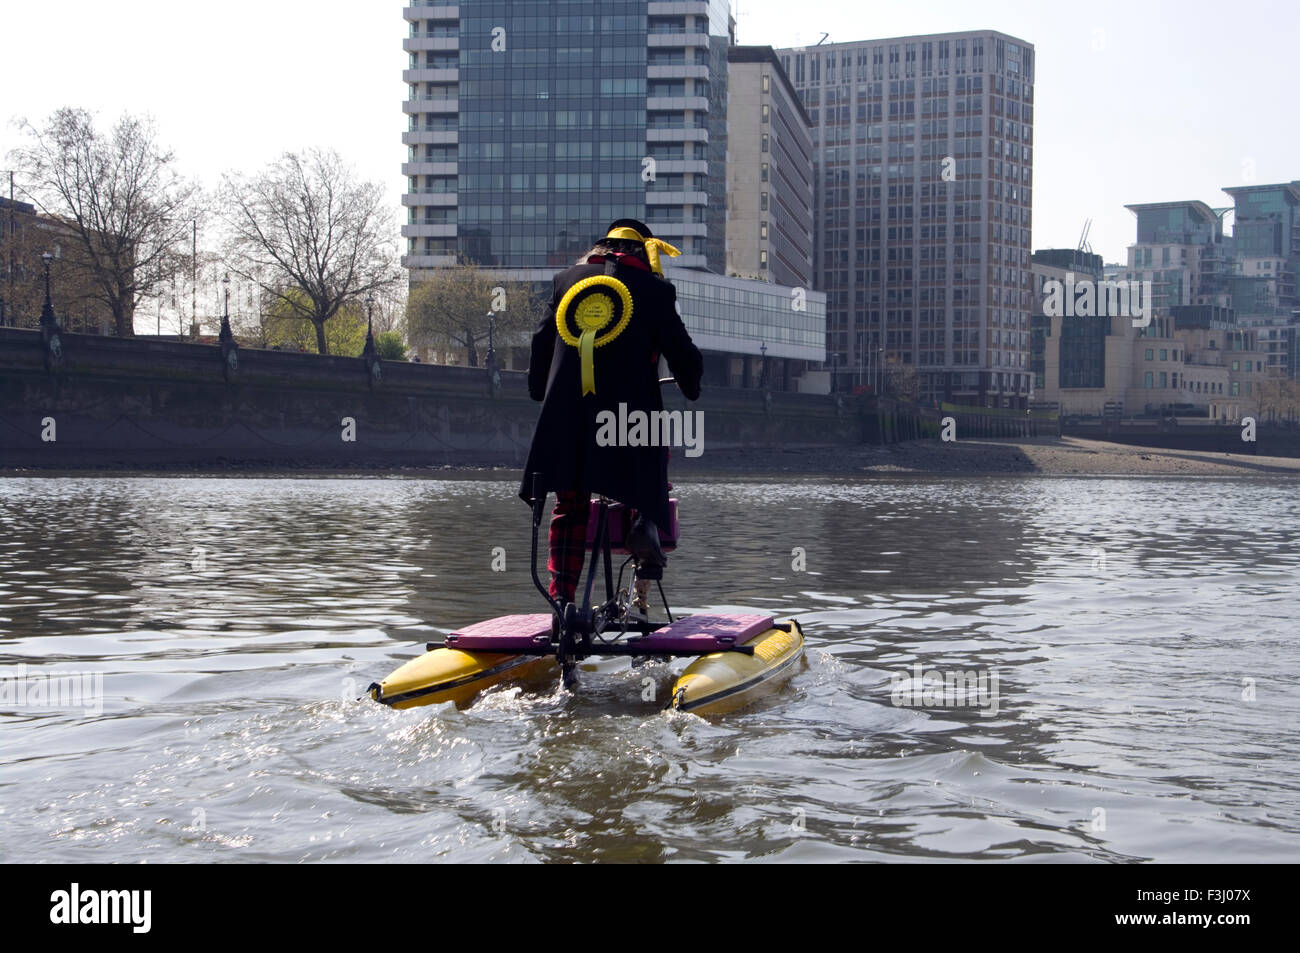 Hackney Monster Raving Loony Party candidate, Nigel Knapp,on floating bicycle on the Thames in front of the House - Stock Image